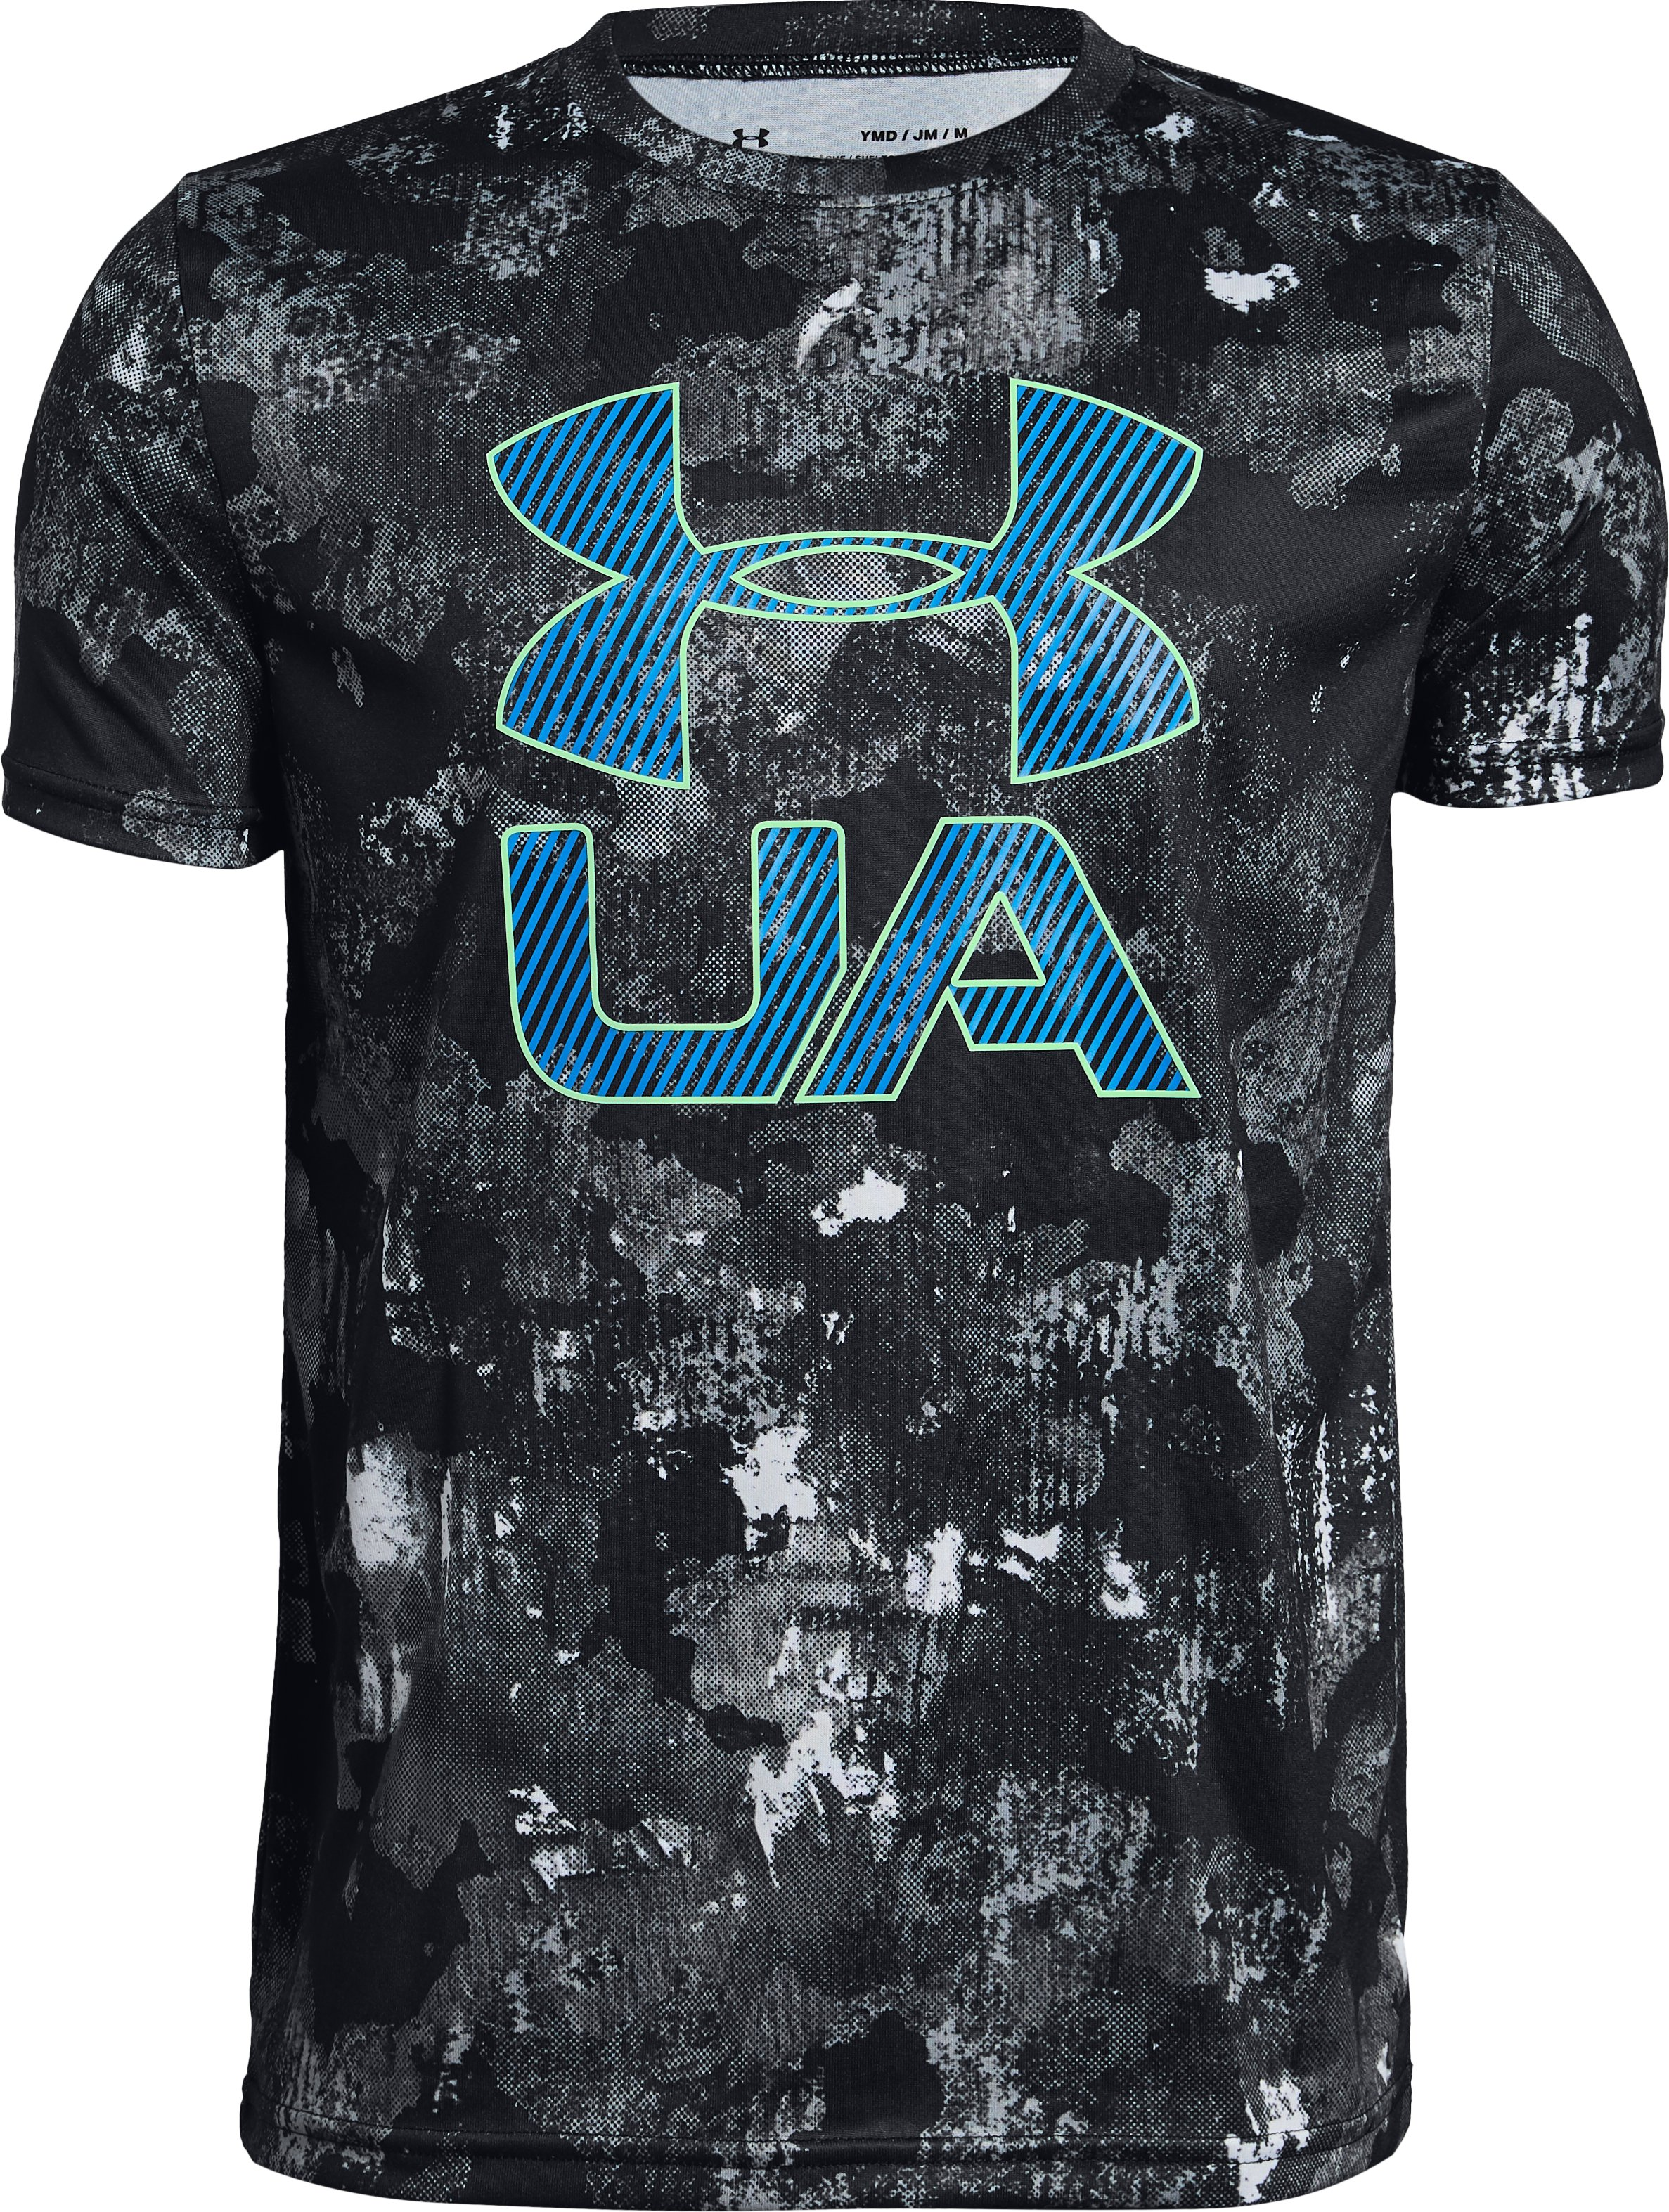 Boys' UA Printed Crossfade Short Sleeve T-Shirt, Black , zoomed